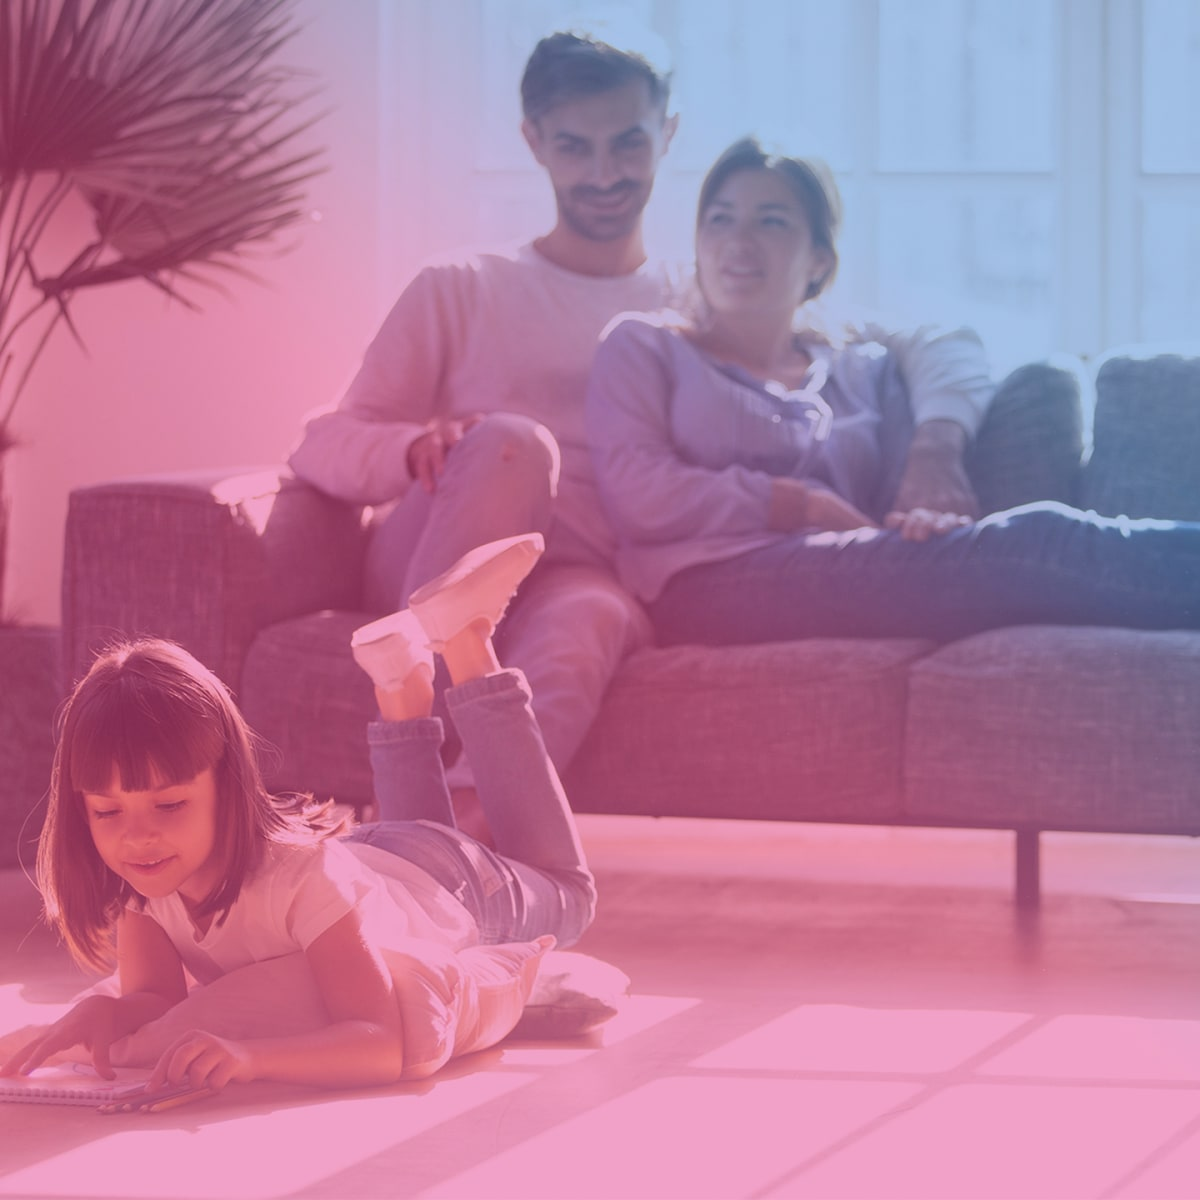 Parents on a couch with female child playing on the floor